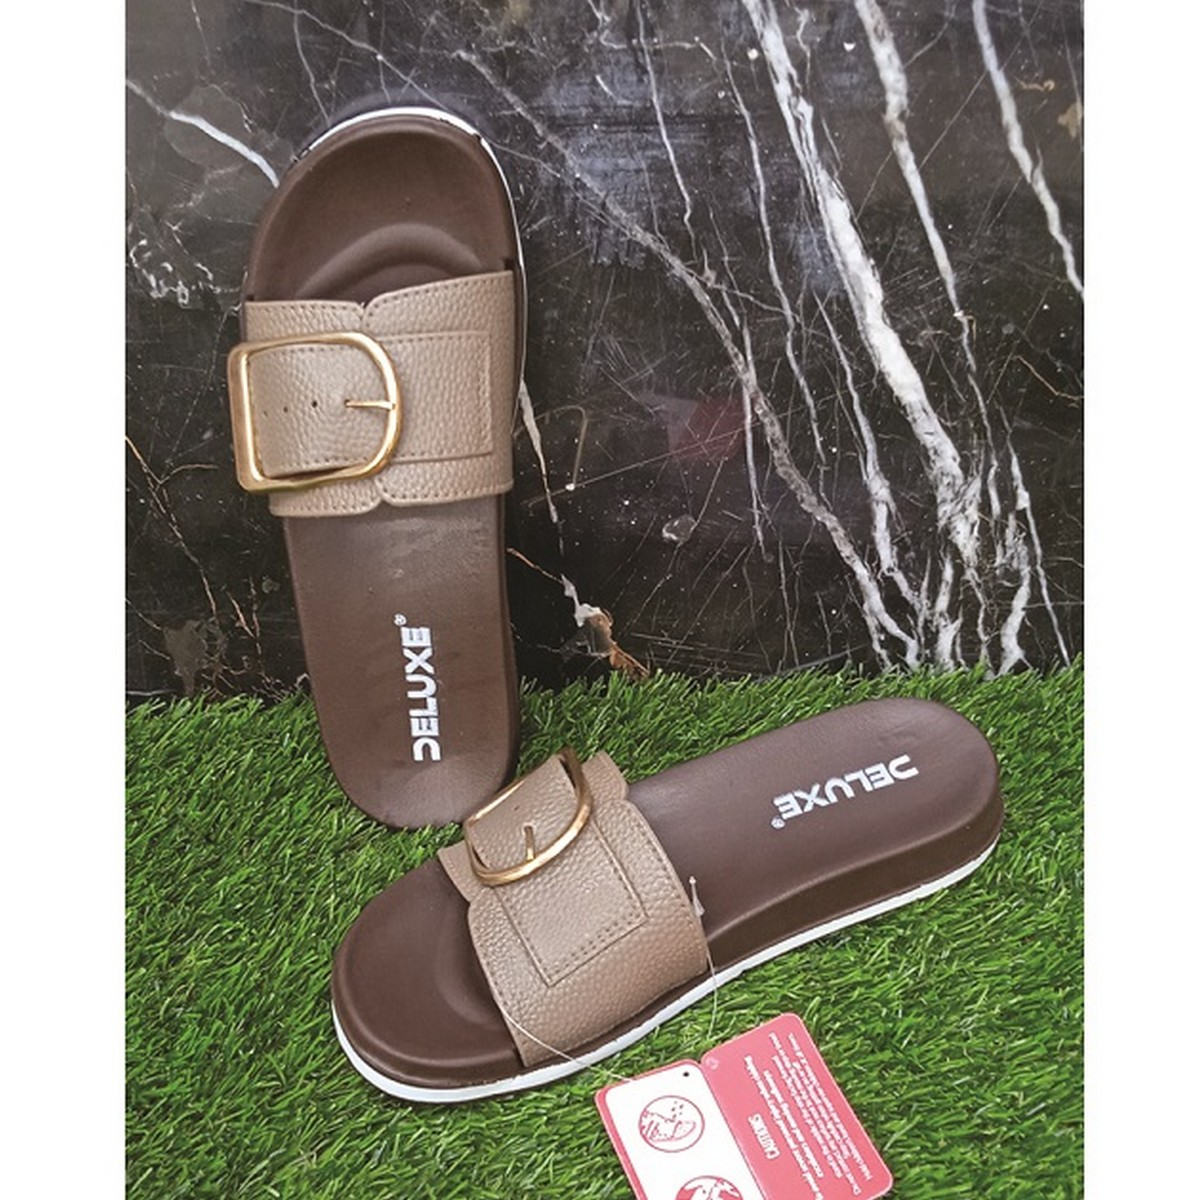 Slide Slippers with Buckle for Women